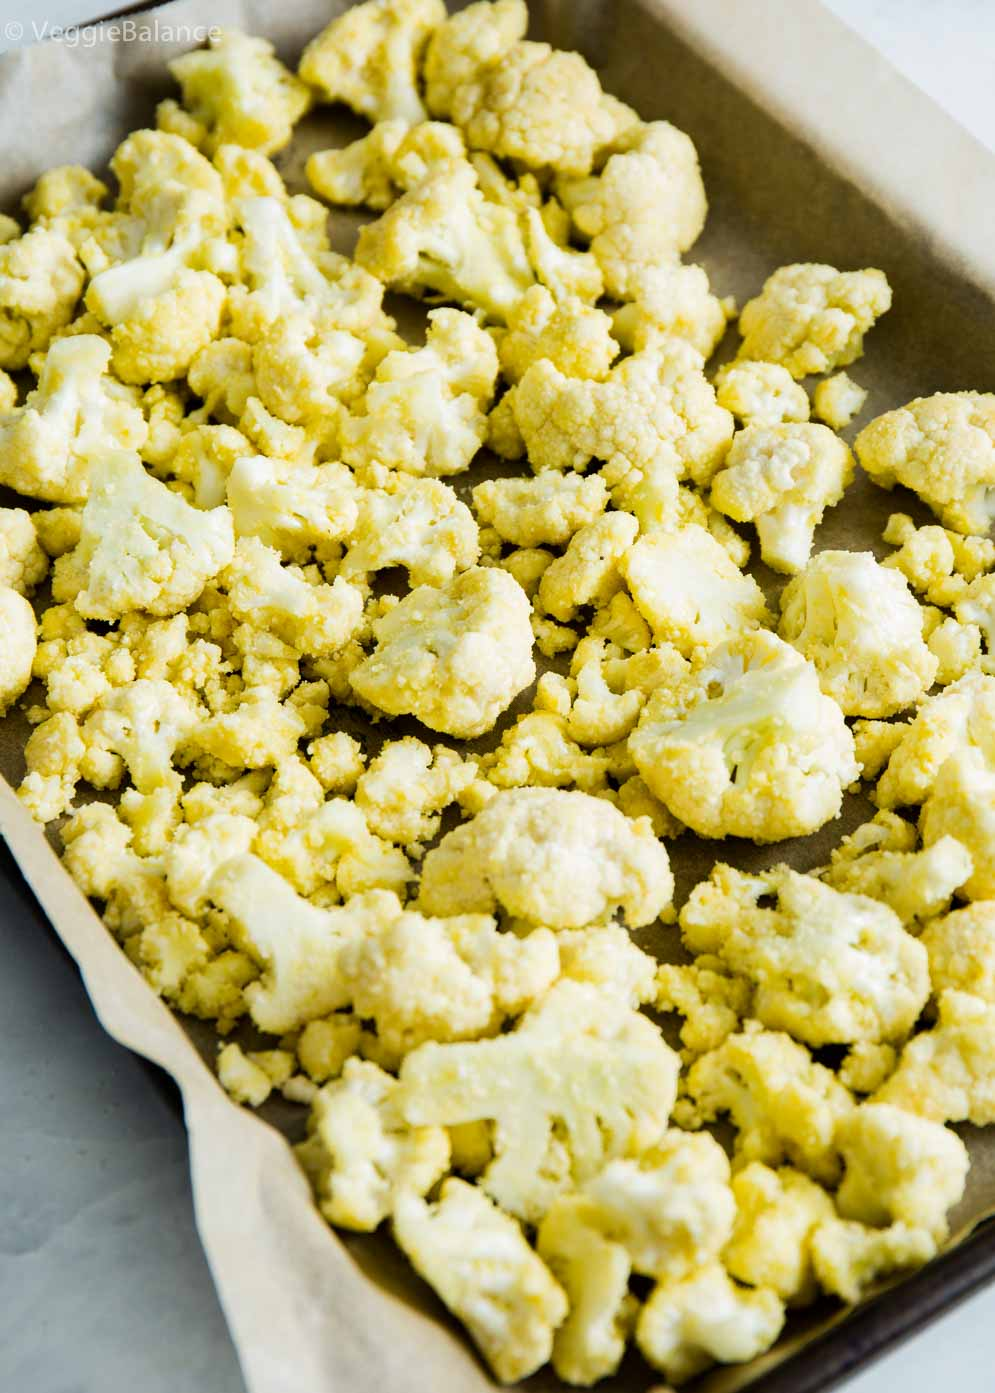 Roasted Cauliflower ready to be served